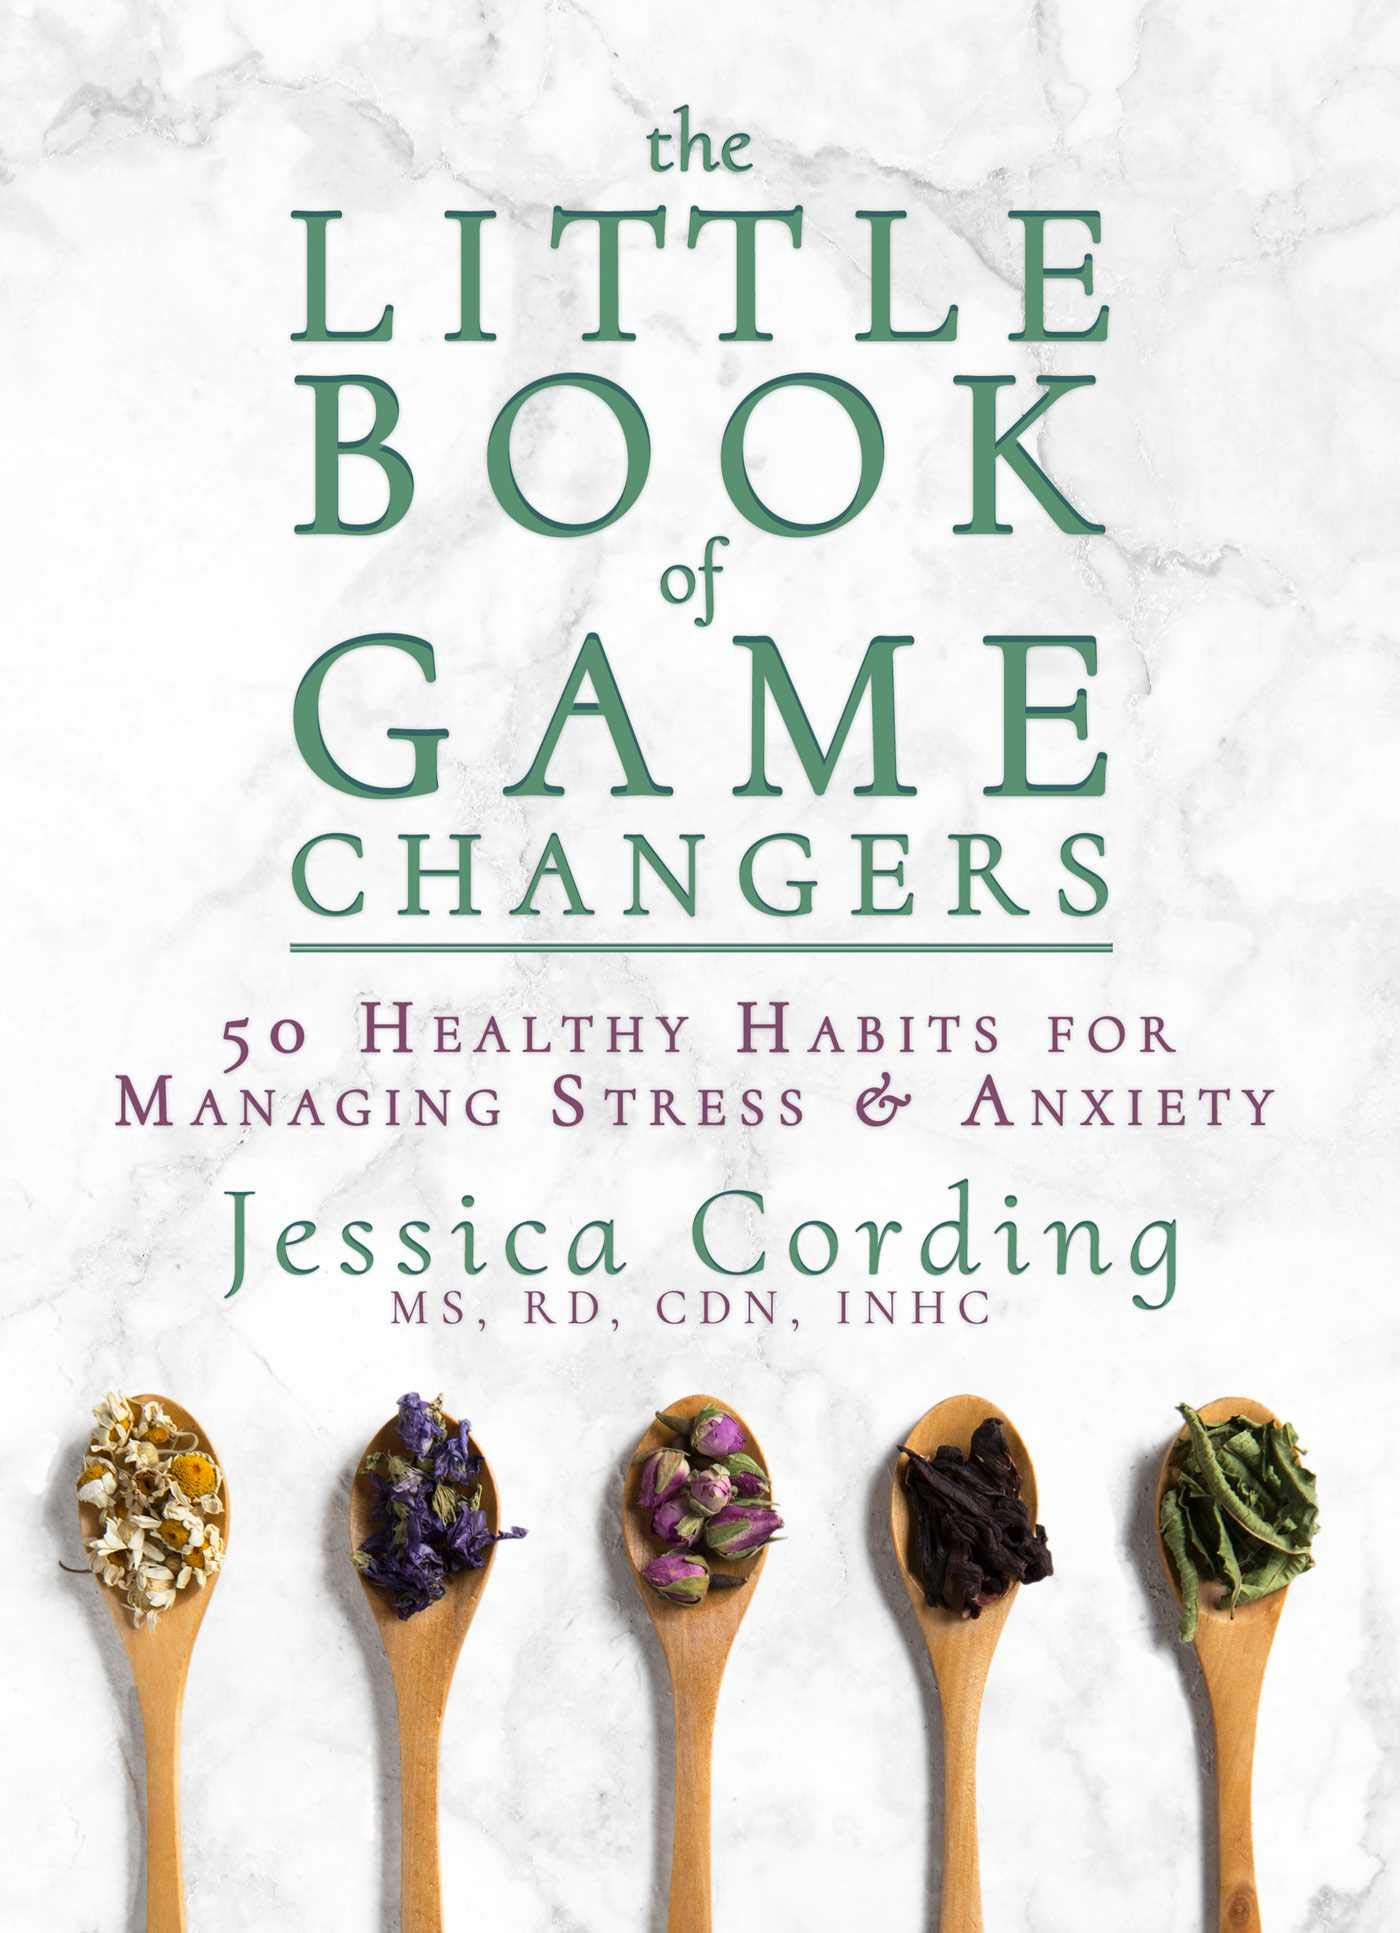 The Little Book of Game Changers: 50 Healthy Habits for Managing Stress & Anxiety